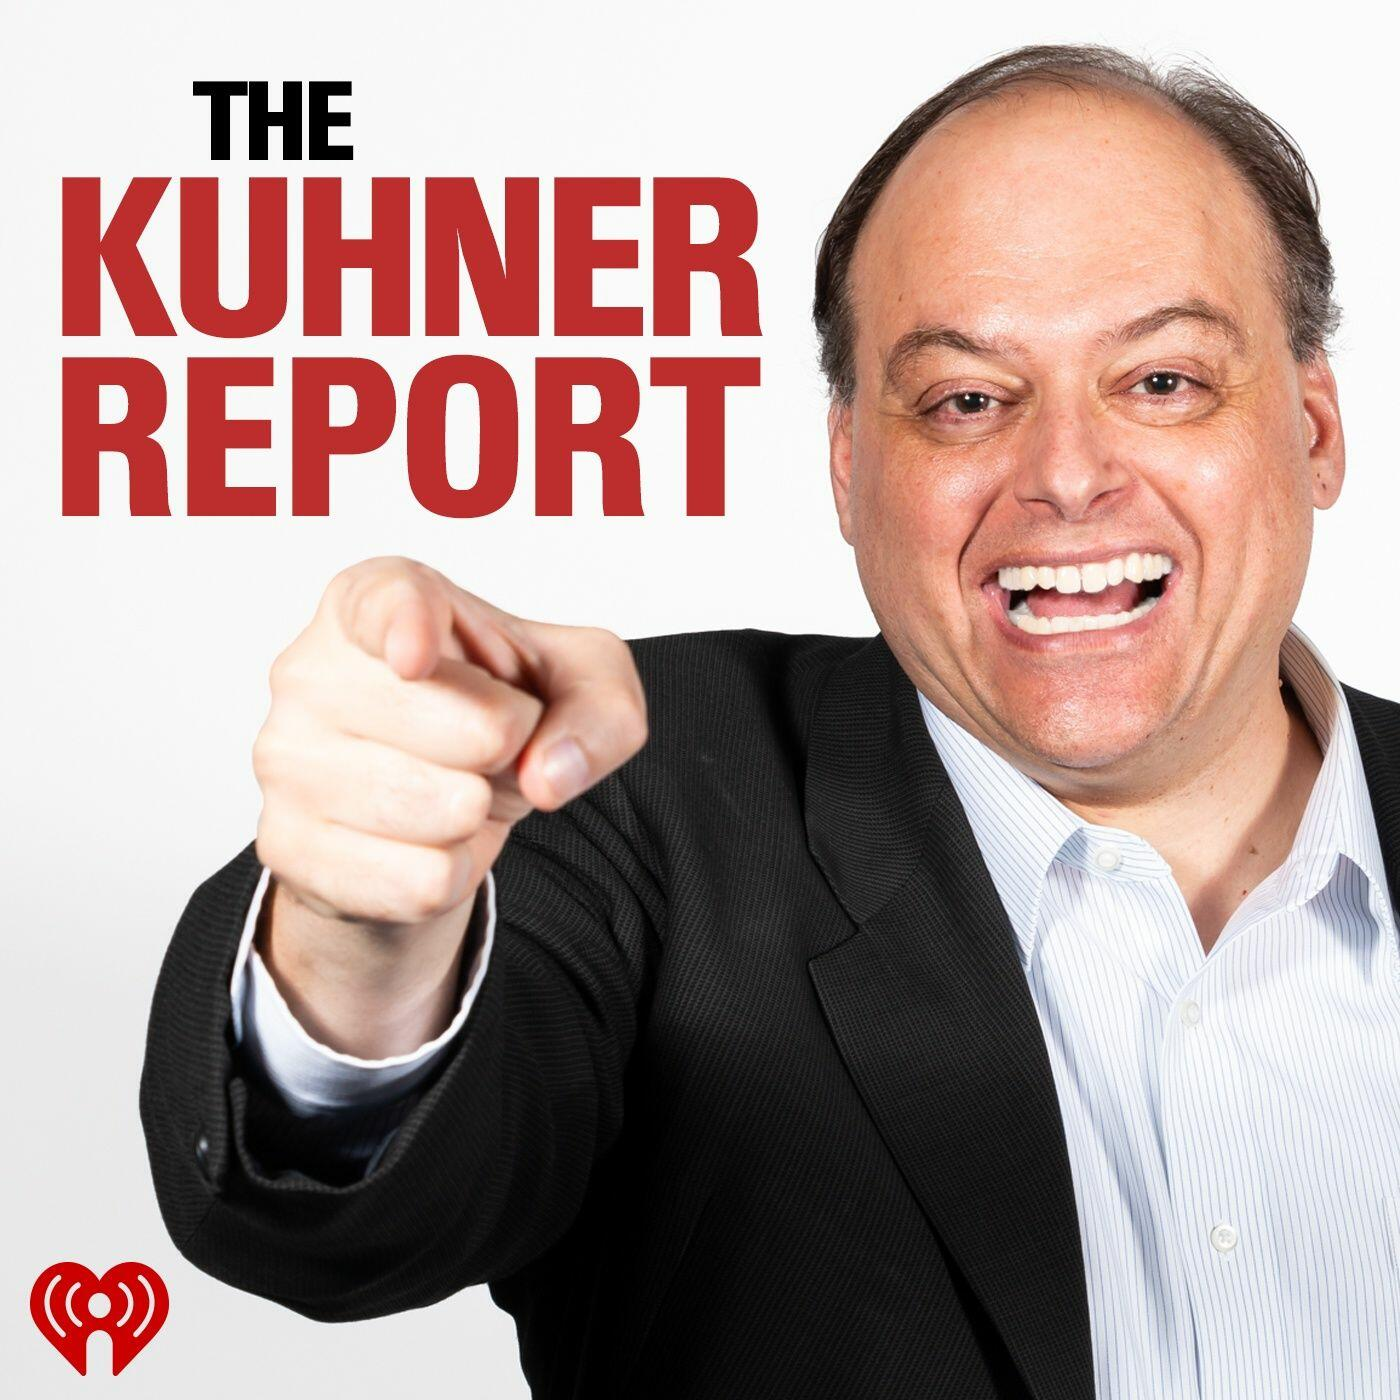 Listen to the The Kuhner Report Episode - Will Megyn Kelly return to Fox News? on iHeartRadio | iHeartRadio